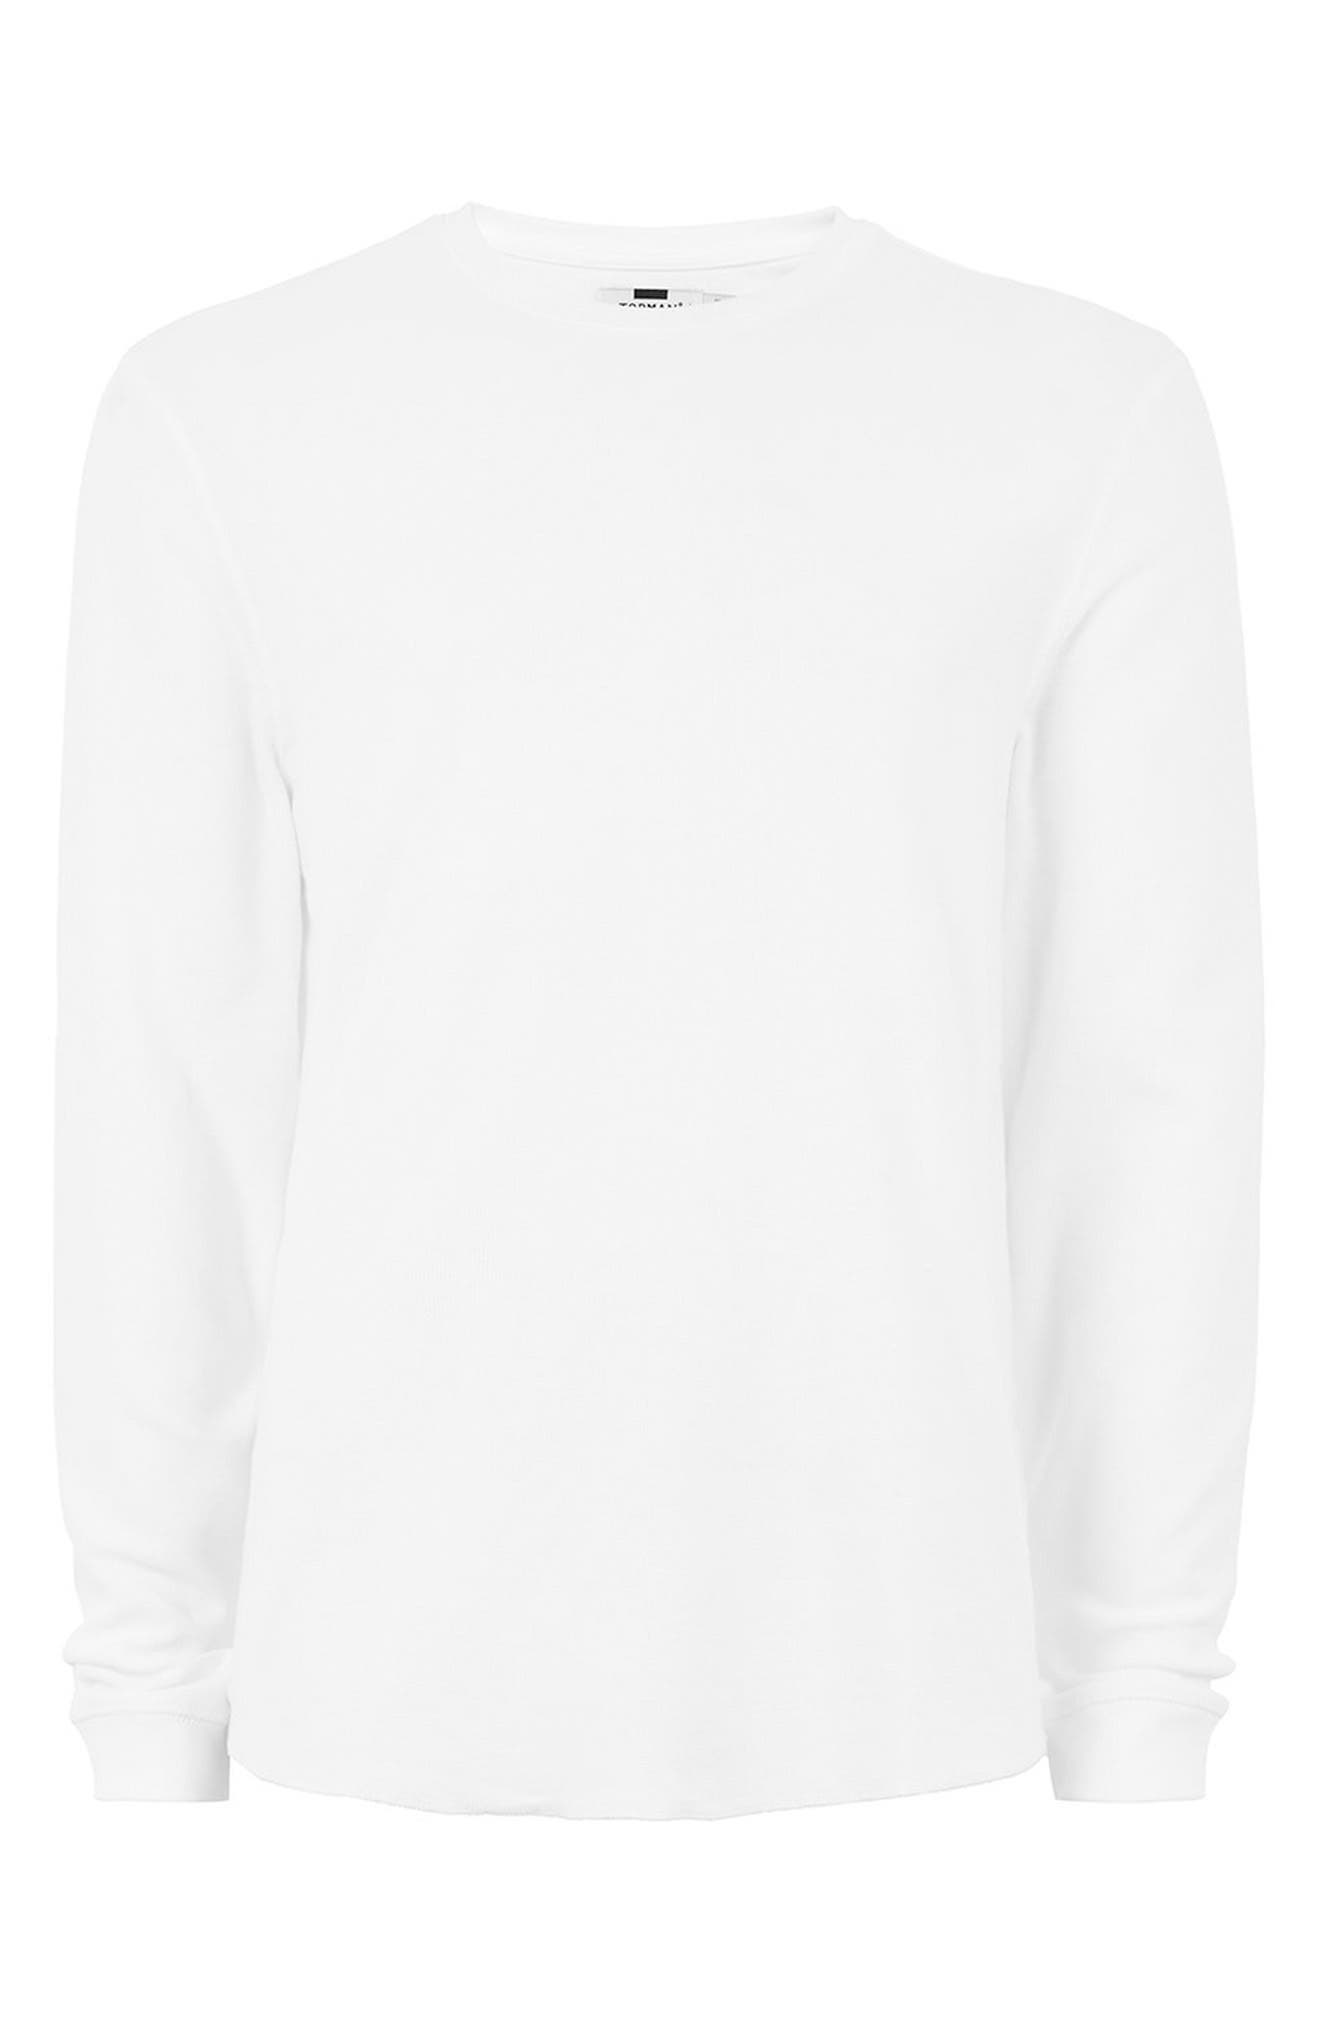 Waffle Knit Long Sleeve T-Shirt,                             Alternate thumbnail 4, color,                             100